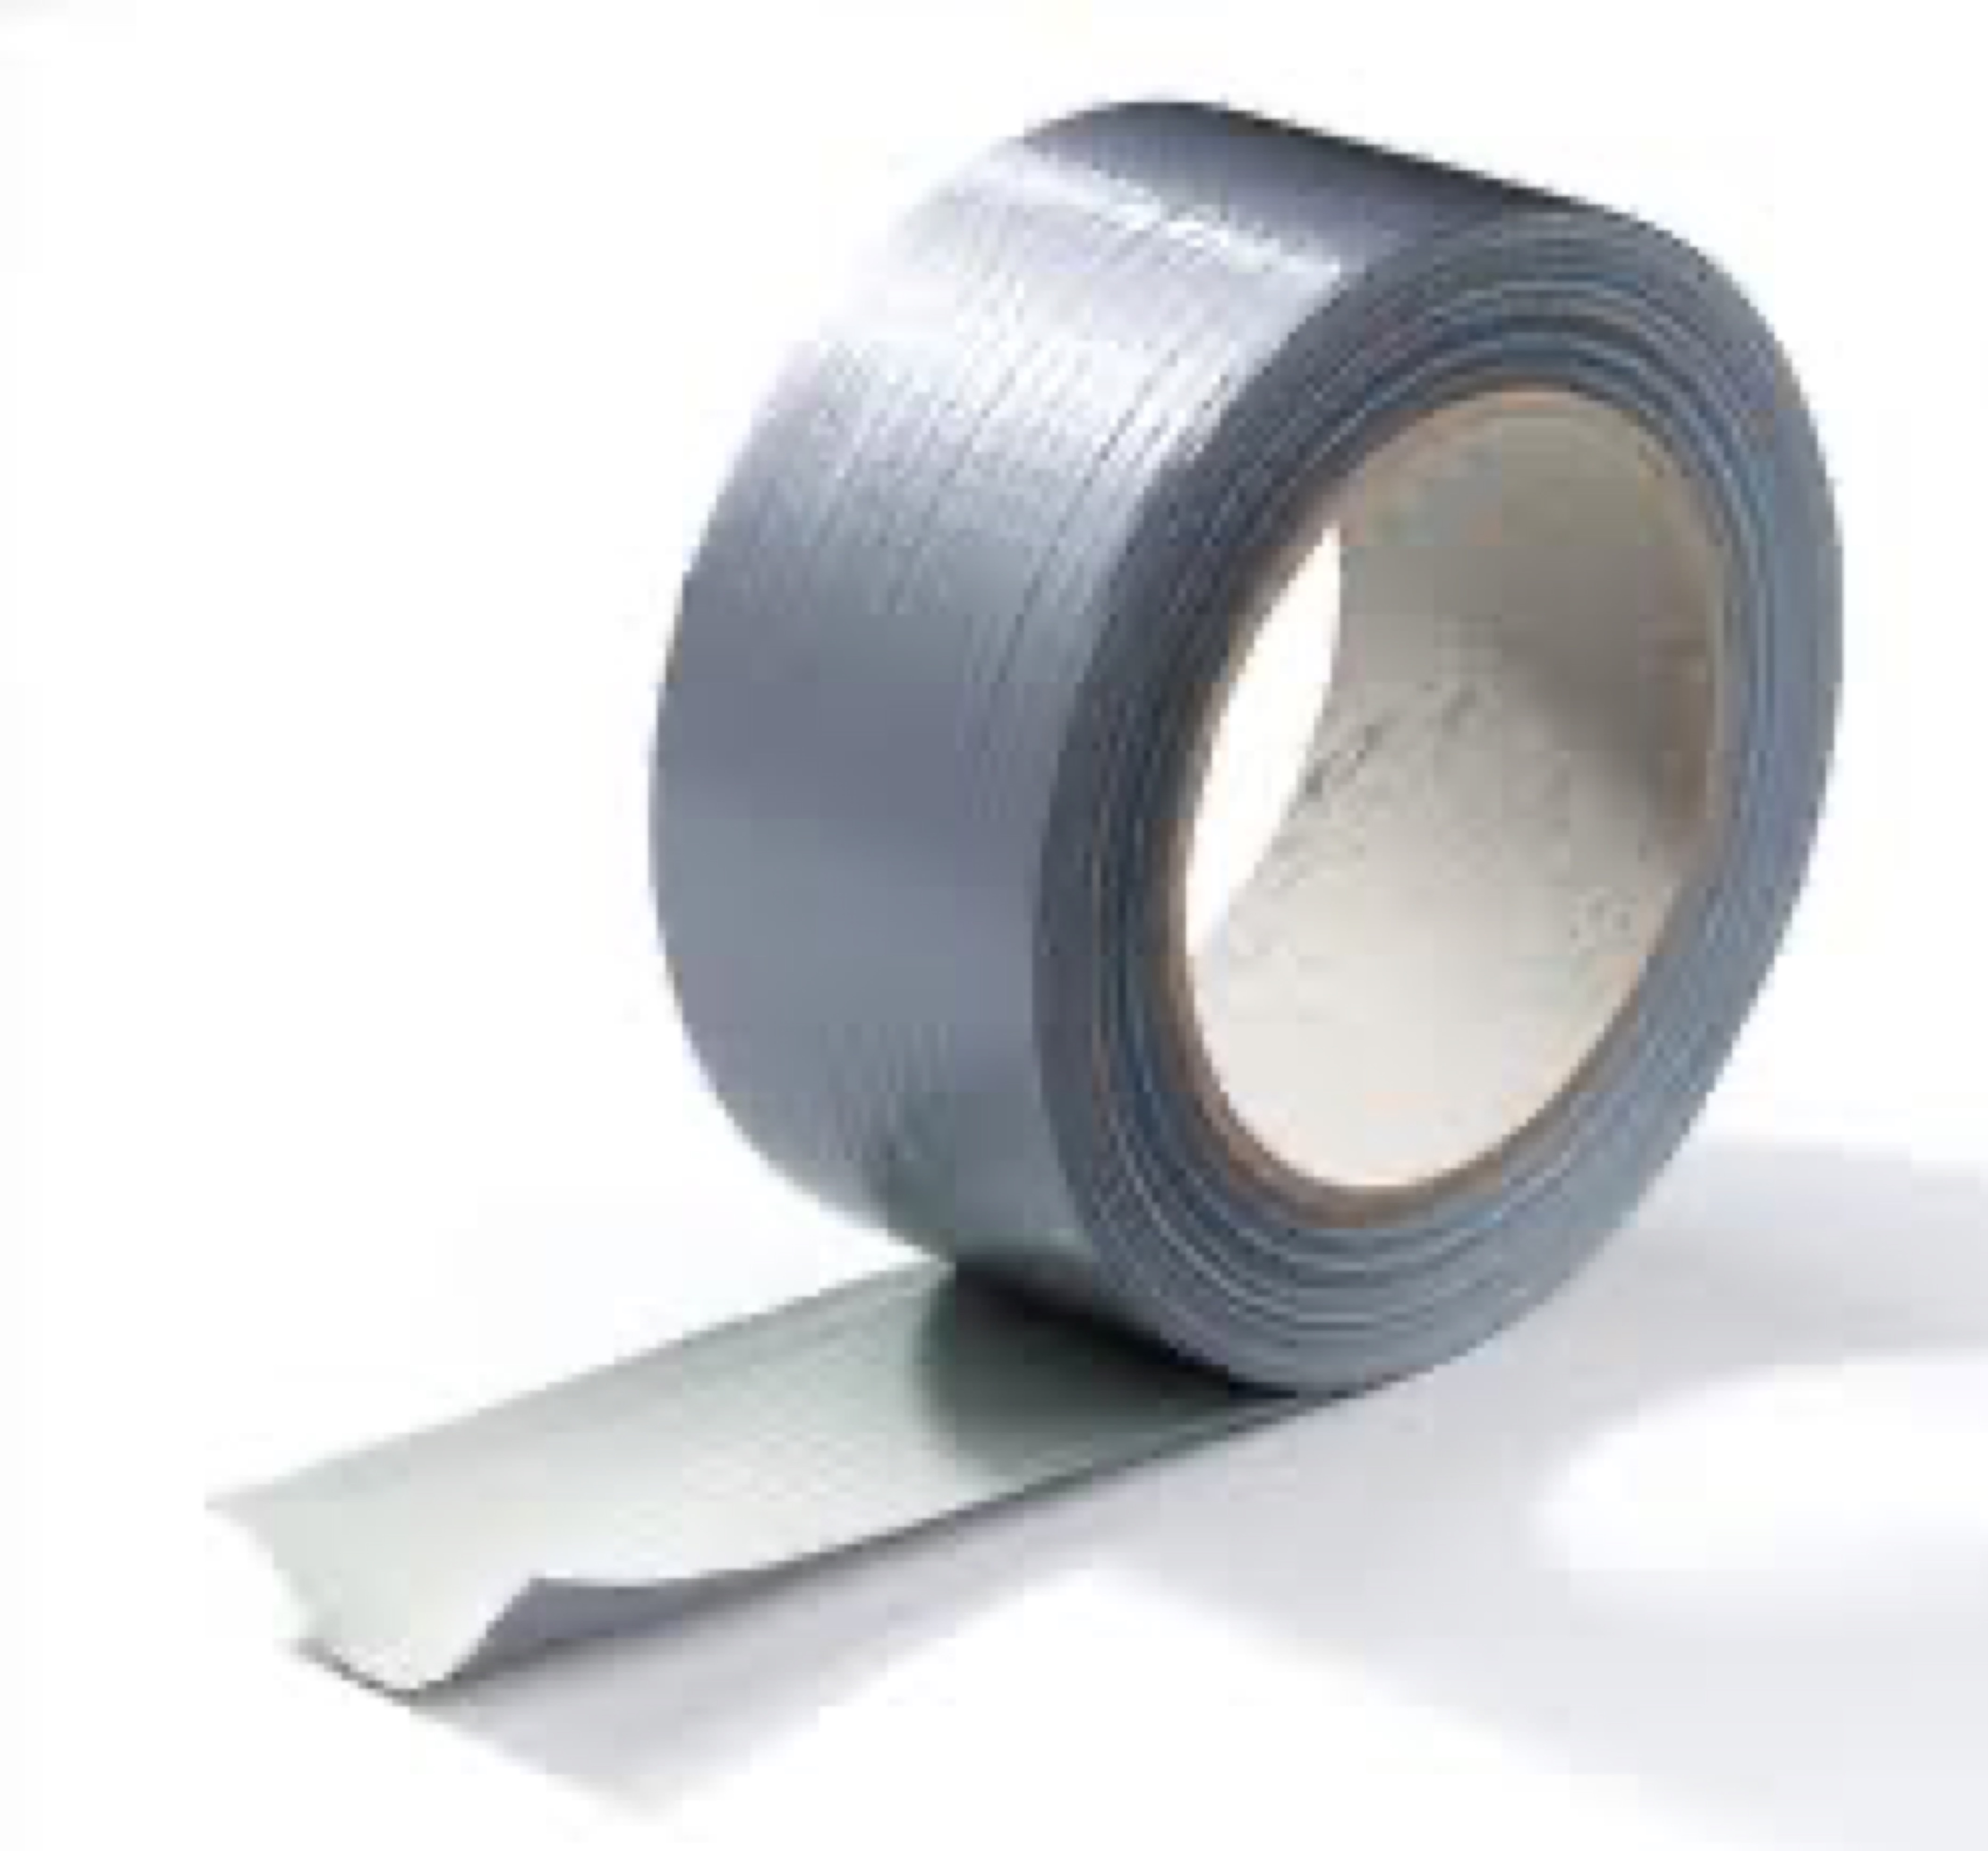 blog image - duct tape